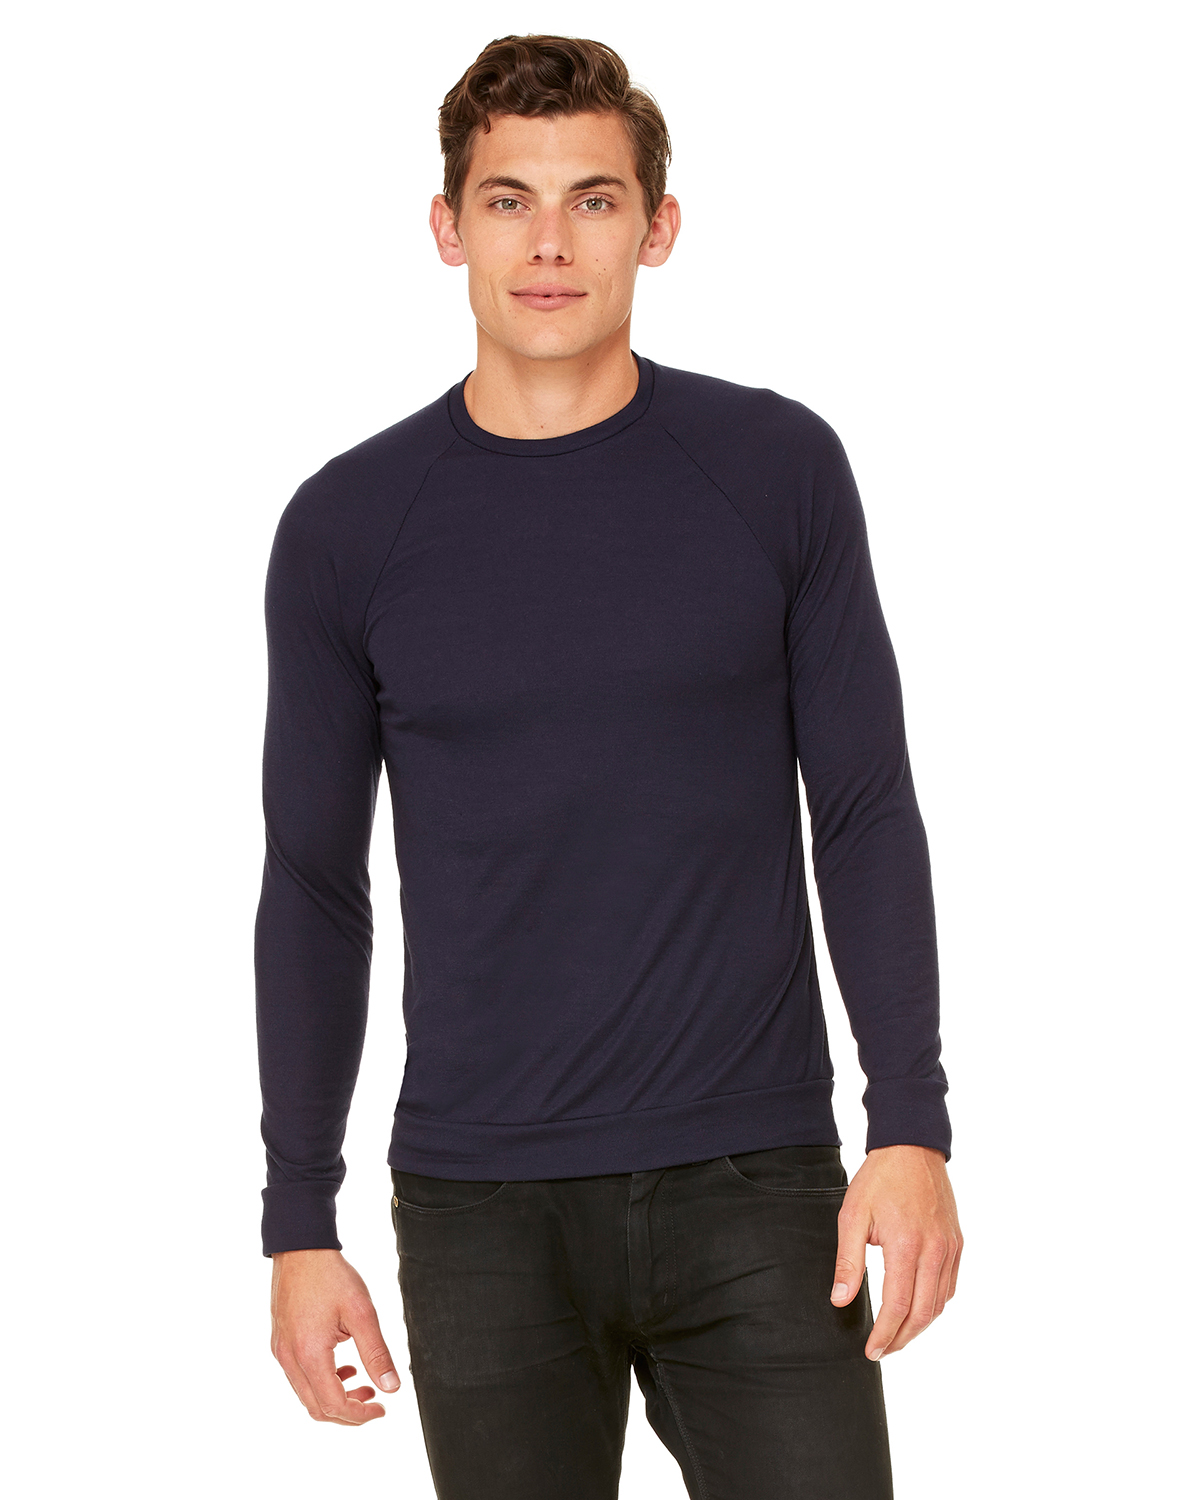 Bella - 3981C Unisex Lightweight Sweater